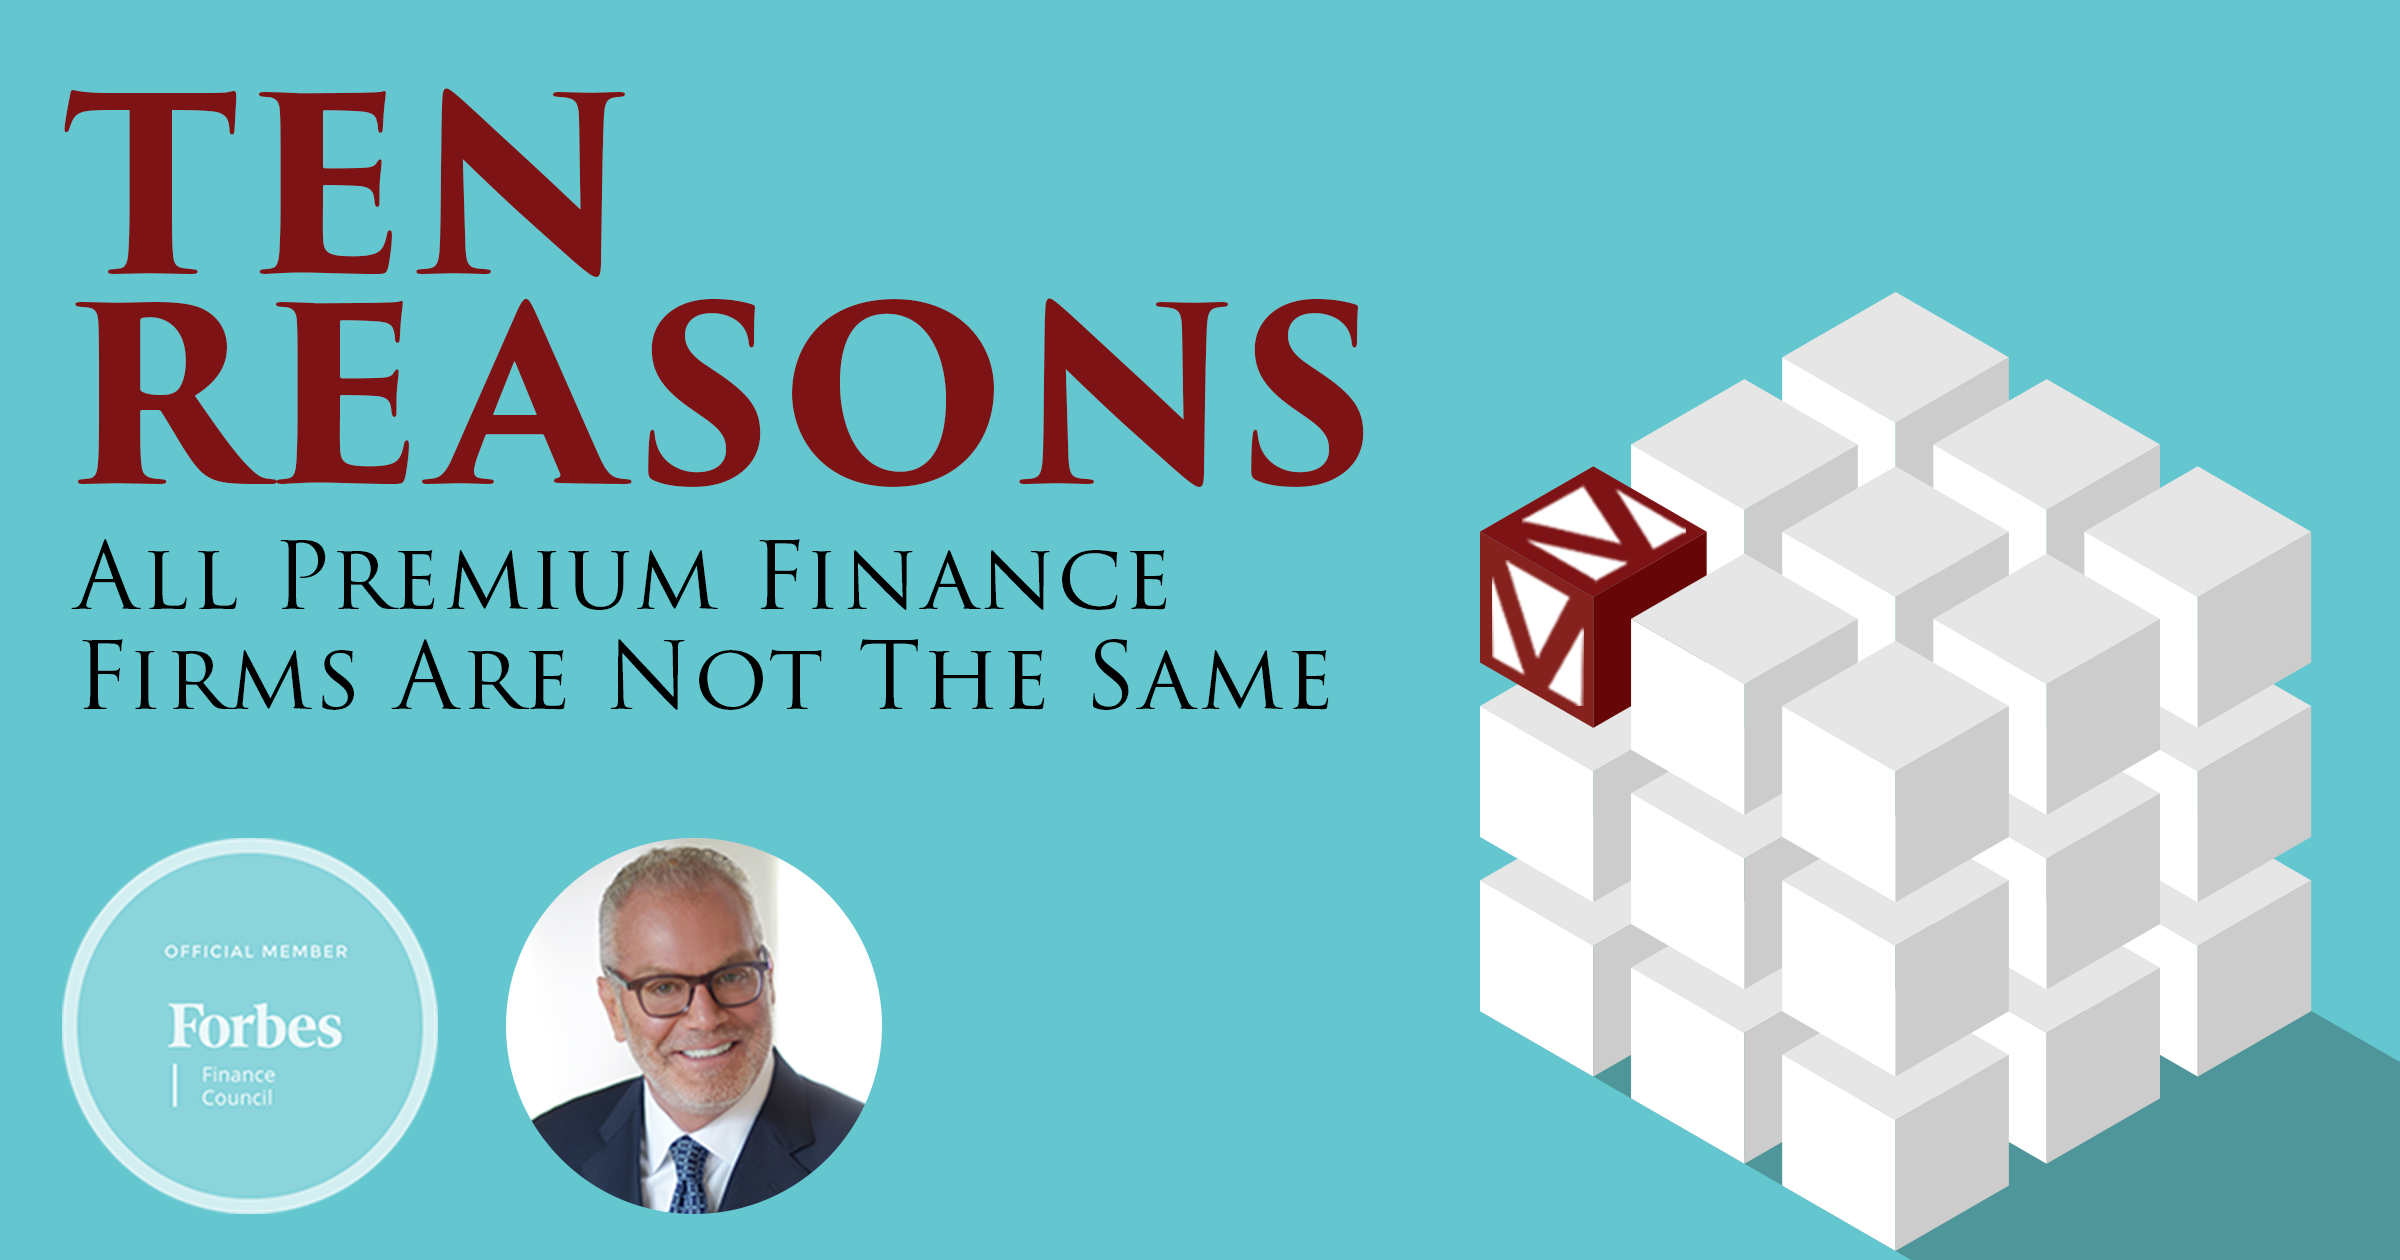 Ten Reasons All Premium Finance Firms Are Not The Same